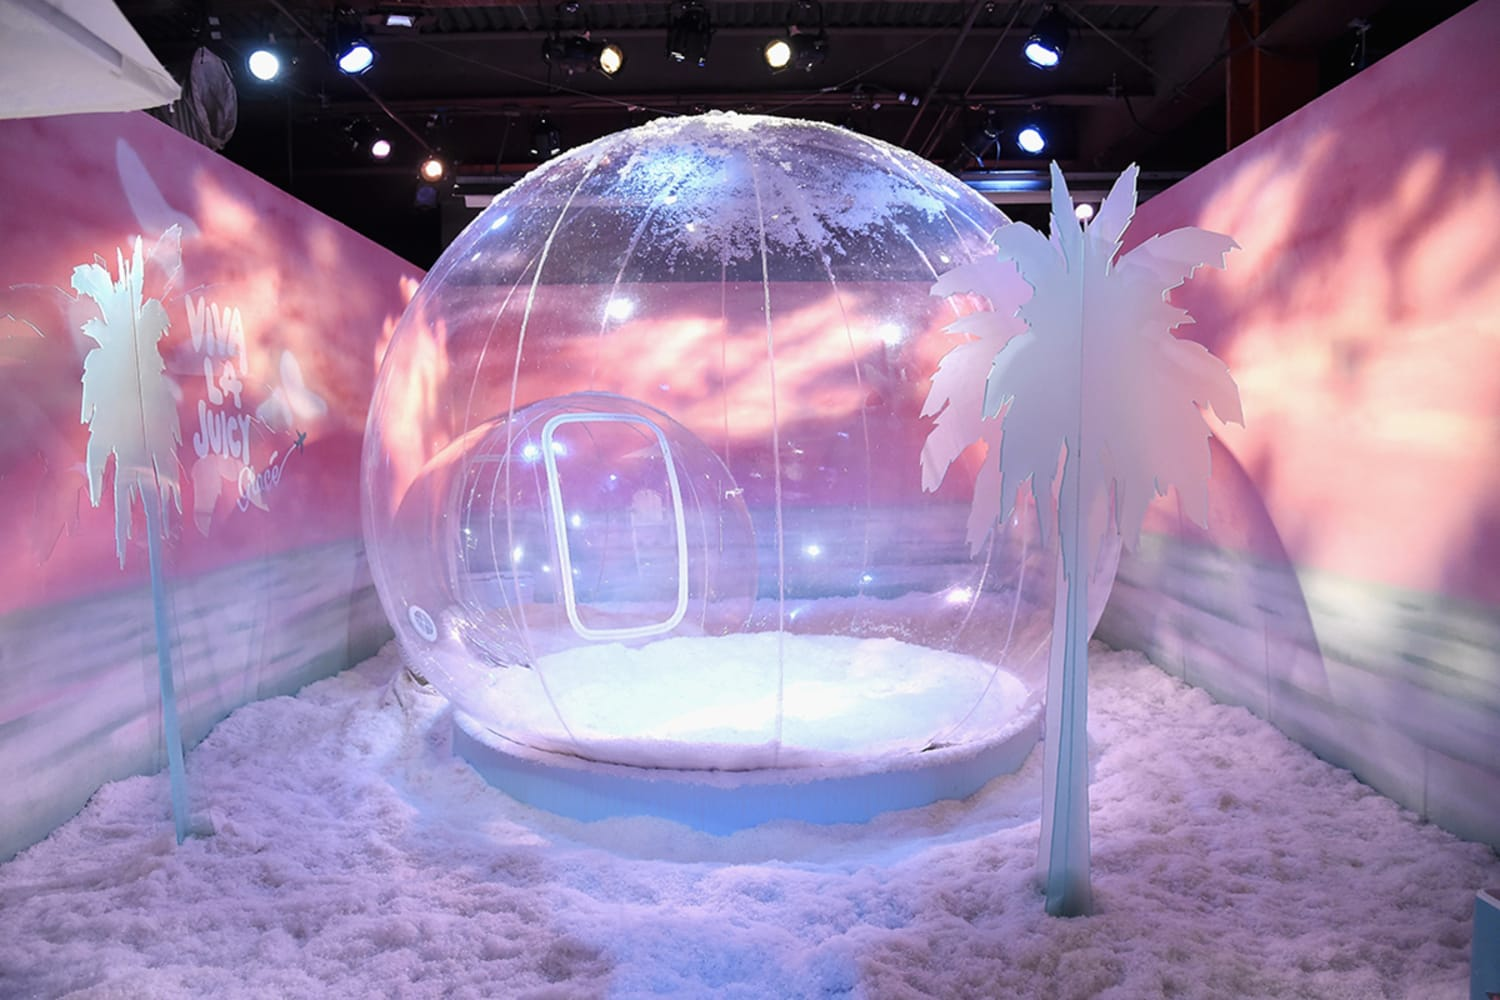 Glace Getaway in Collaboration with Juicy Couture at Refinery29 Third Annual 29 Rooms Turn It Into Art Press Preview